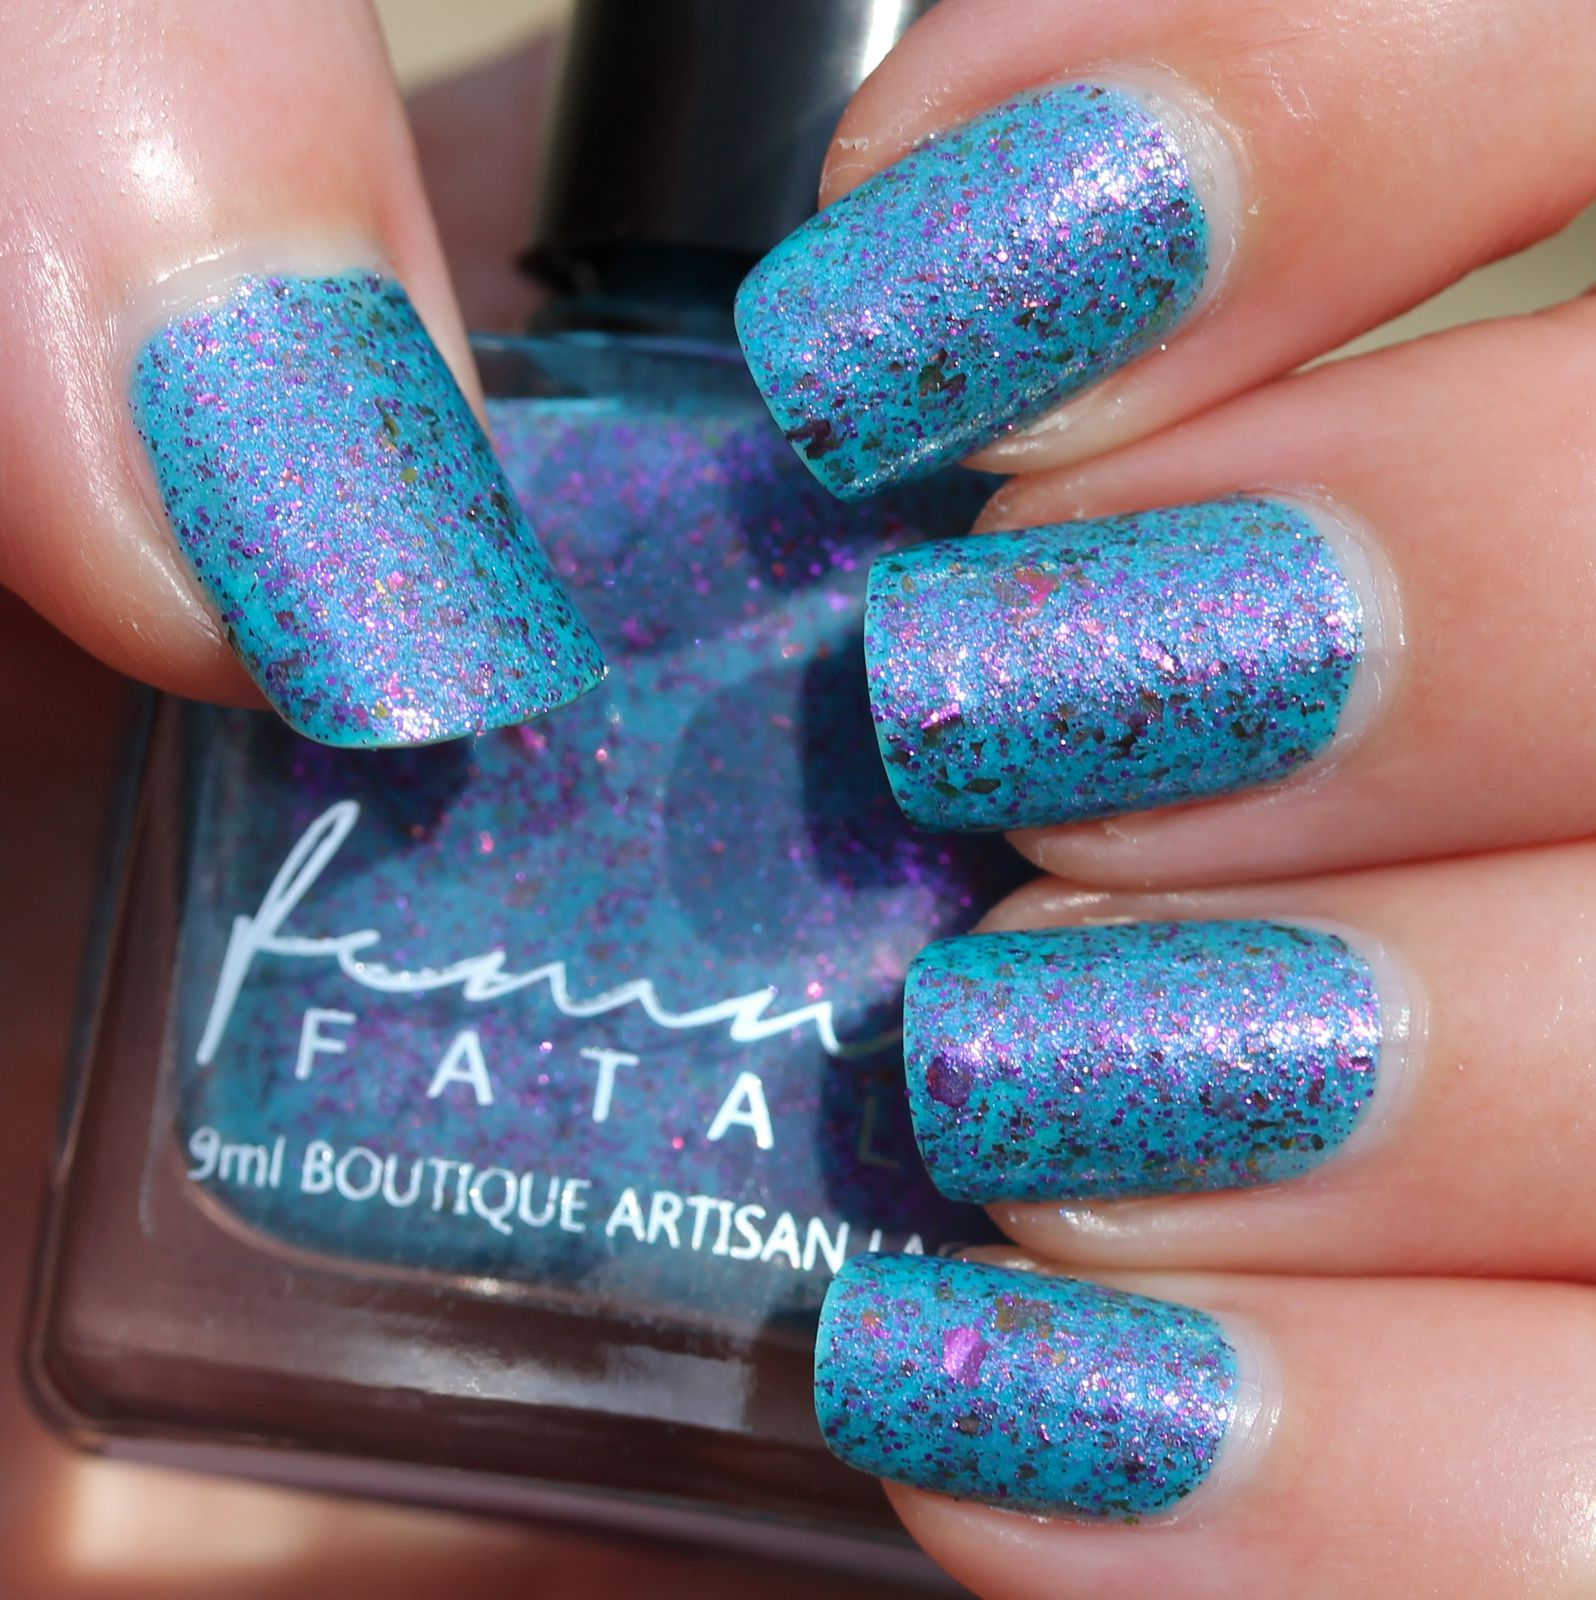 Femme Fatale Cosmetics - Wonderland (2 coats, no top coat)